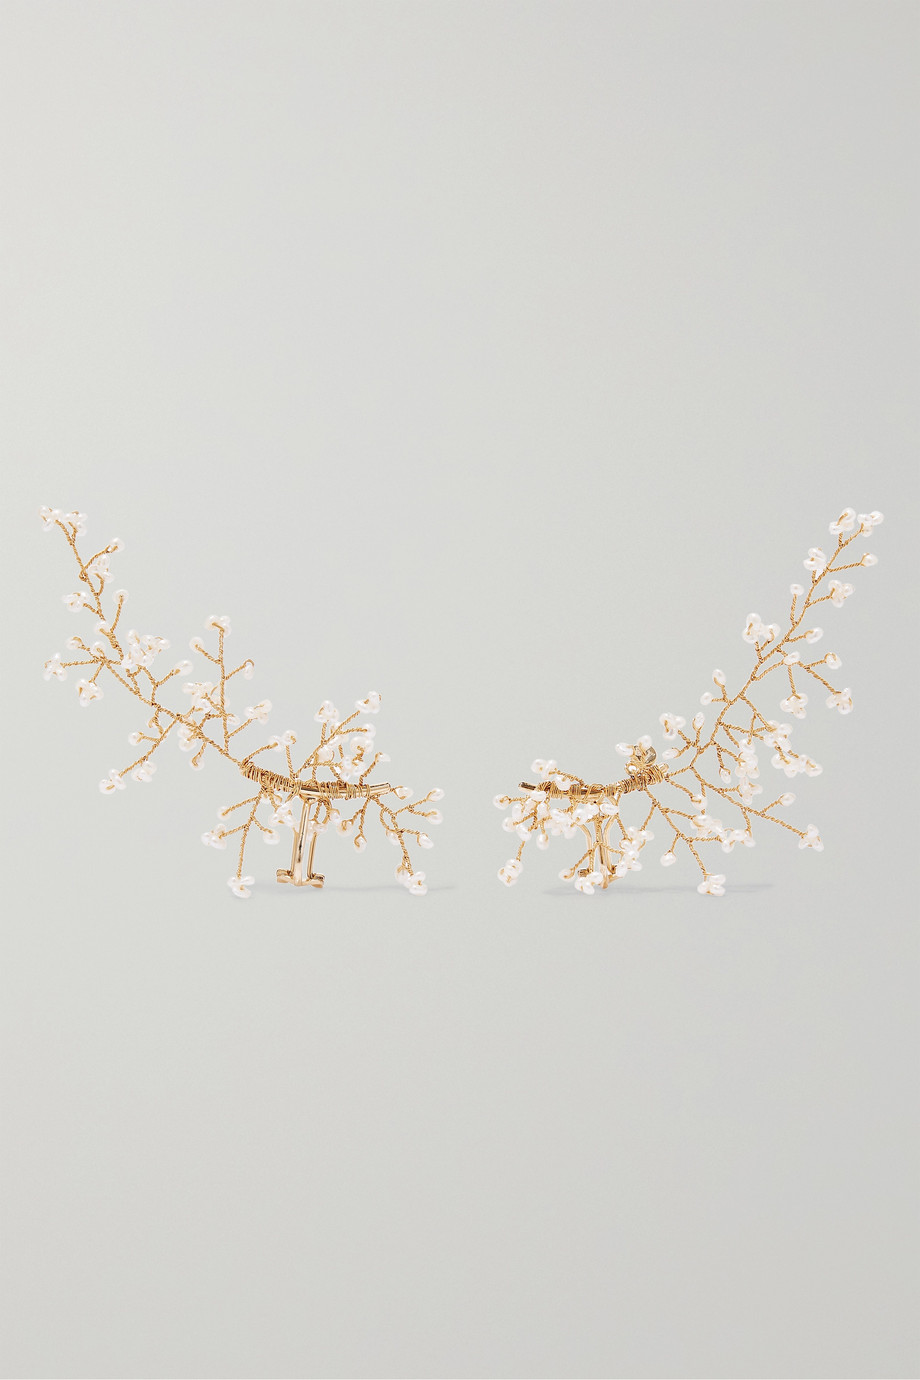 14 / Quatorze Baby's Breath gold-plated pearl ear cuffs